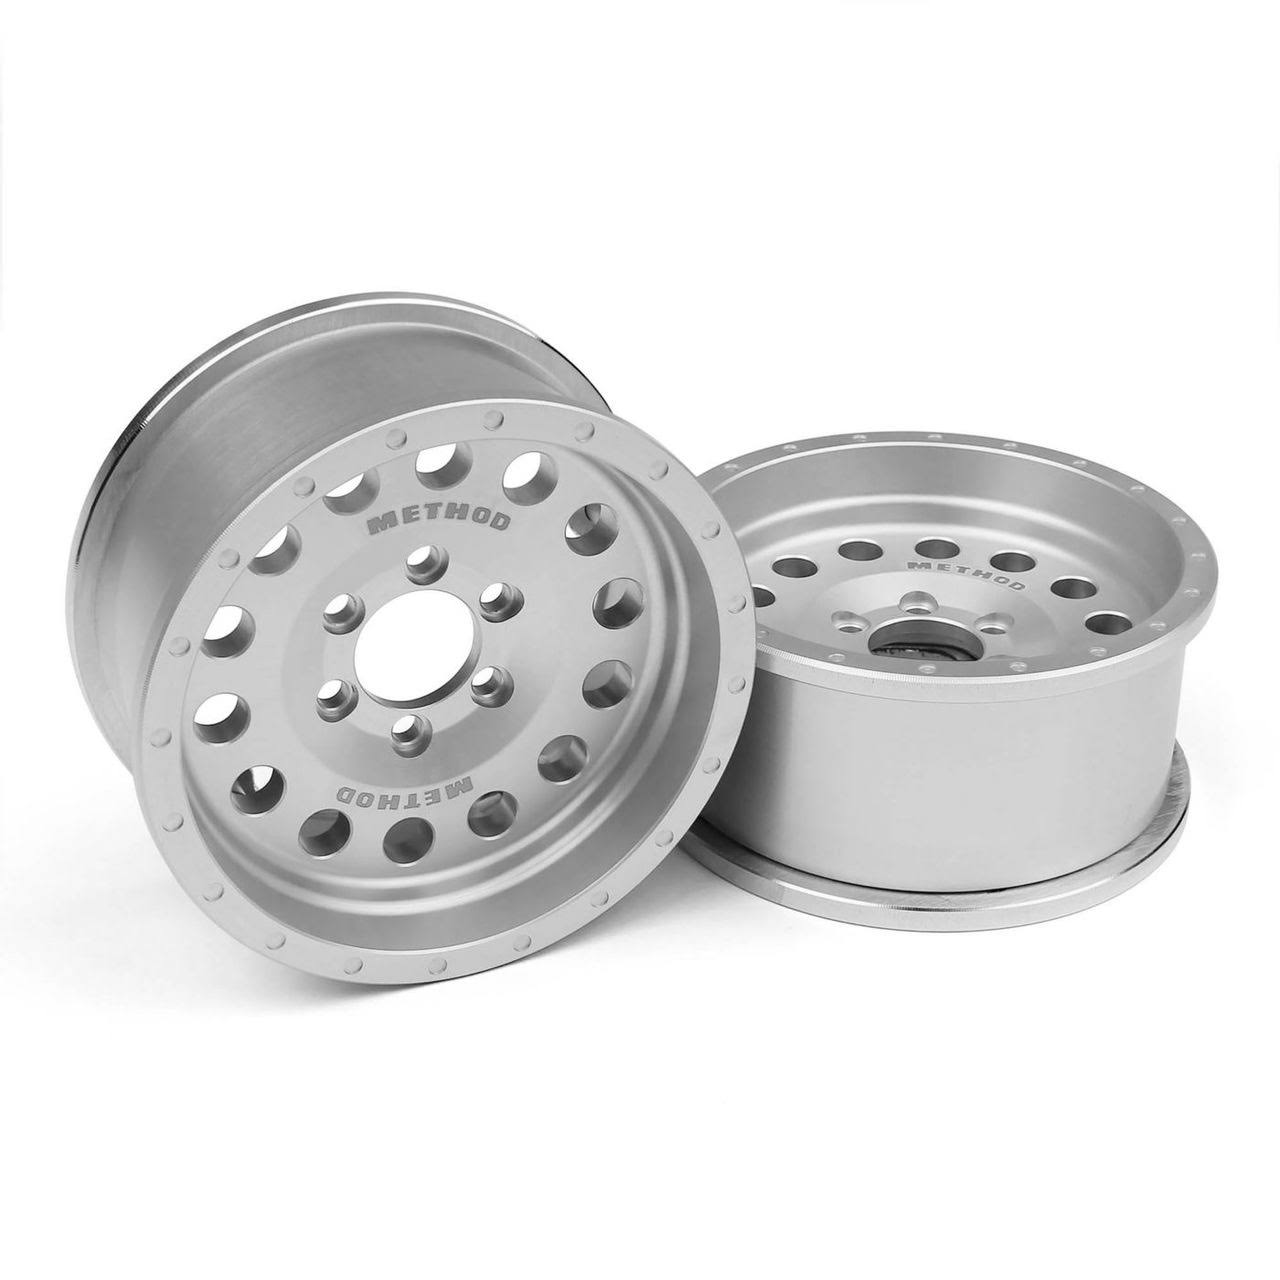 Vanquish Incision Method Clear Anodized Beadlock Wheels - 1/10 scale